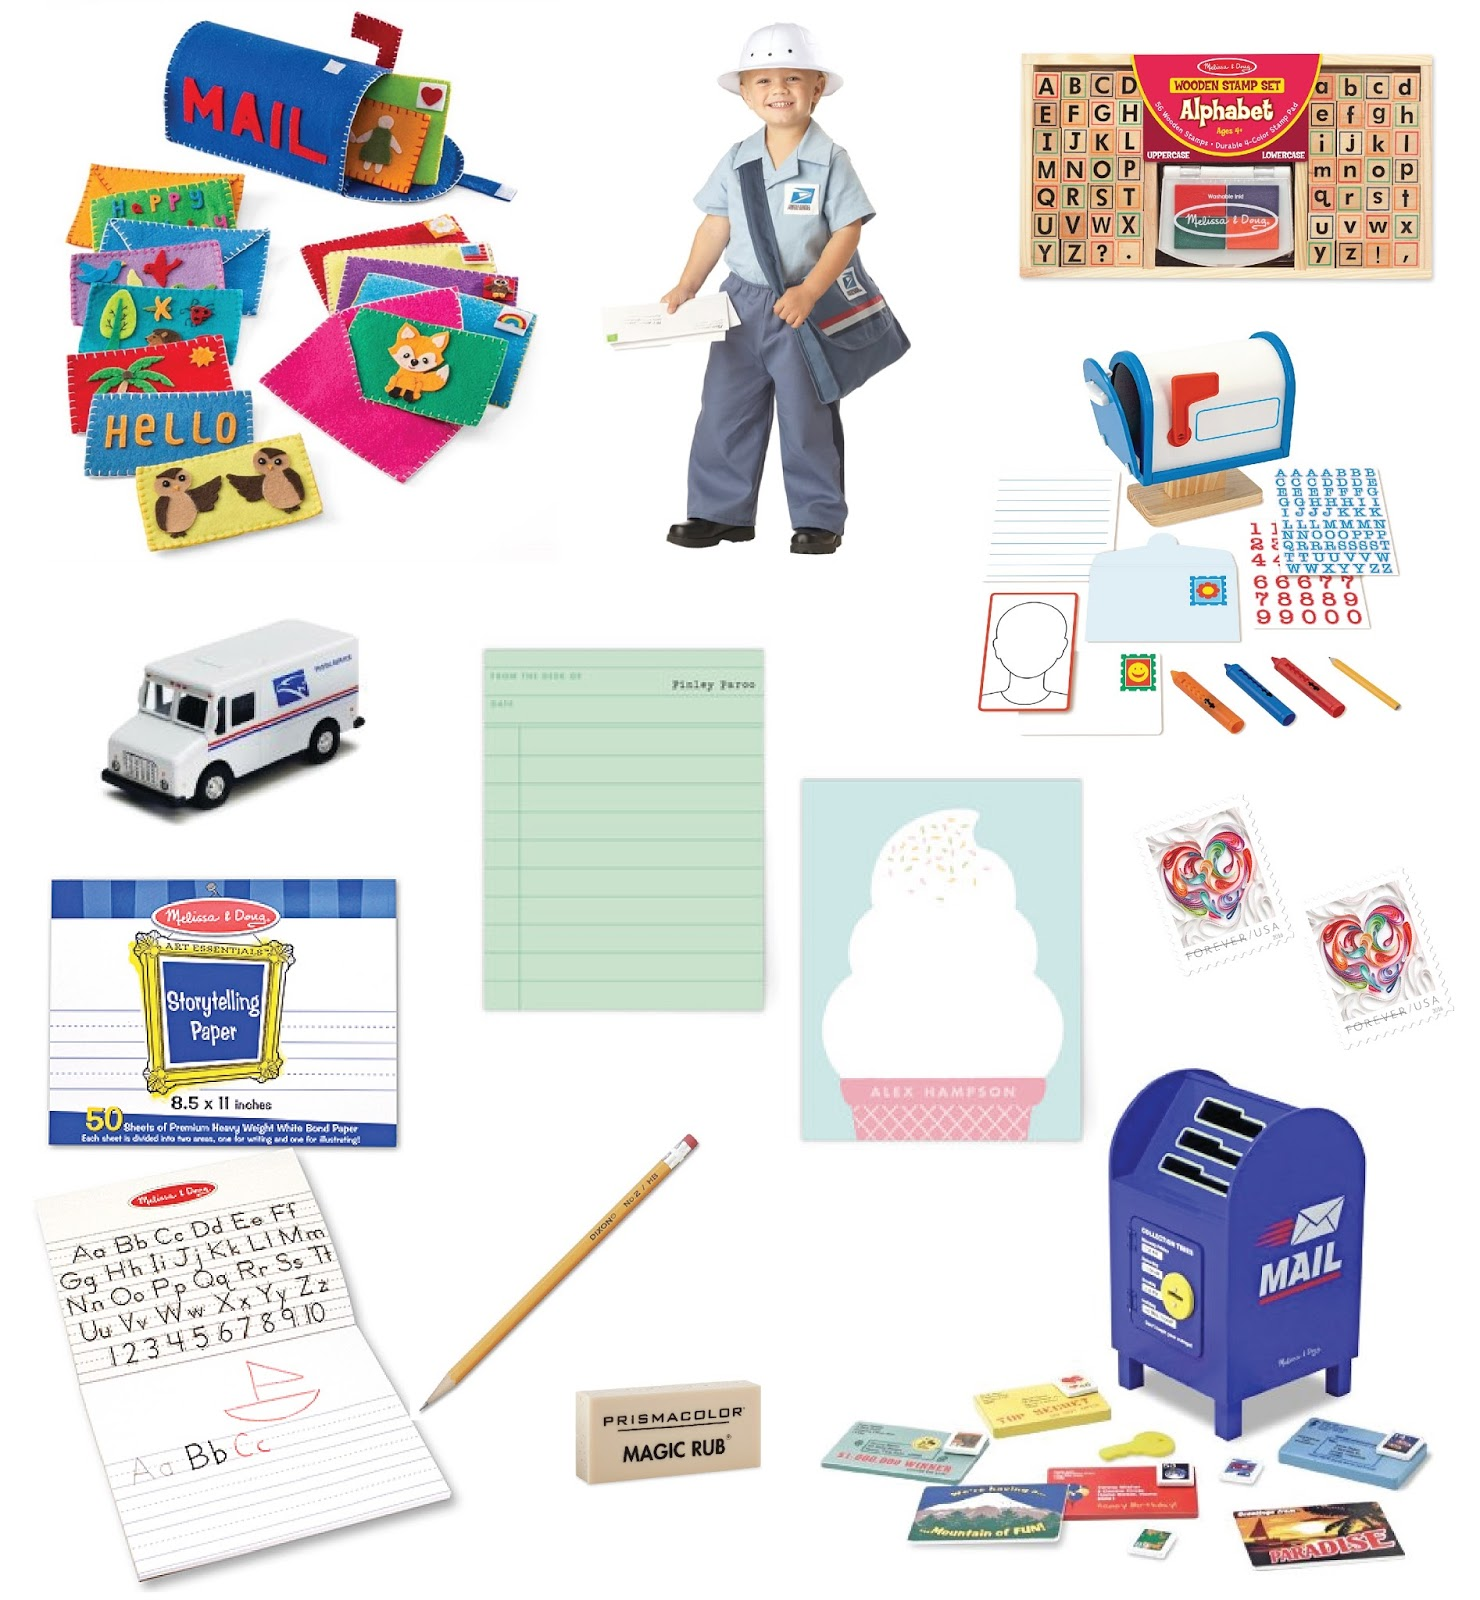 Felt Mailbox Play Set Postman Costume Melissa And Doug Alphabet Stamp Toy Mail Truck Minted Personalized Stationery My Own